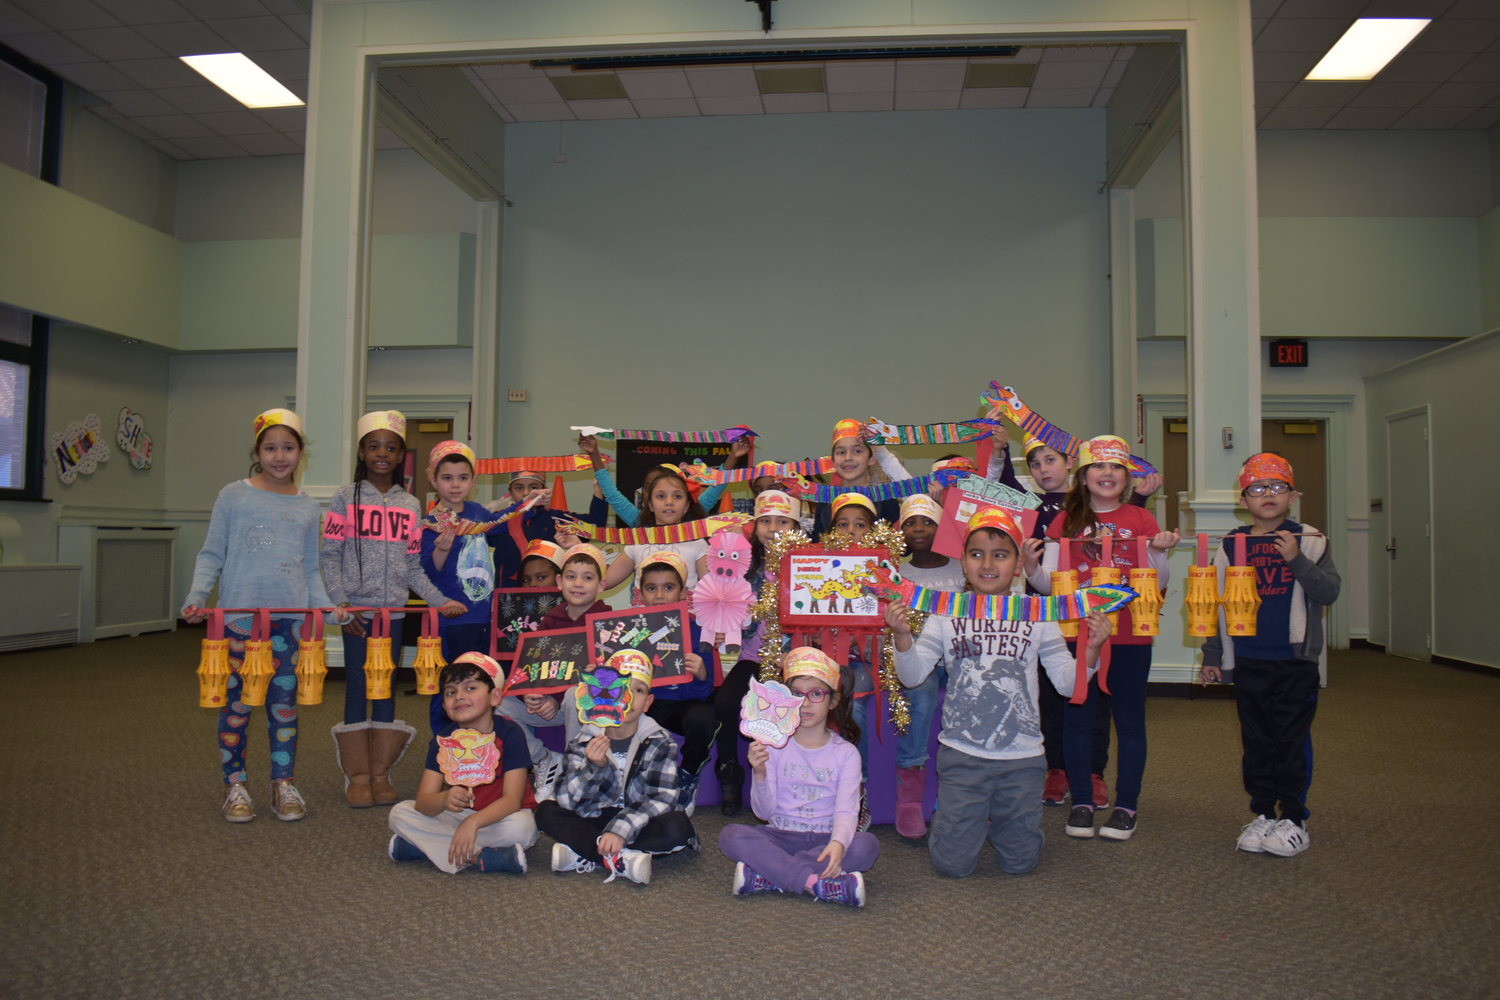 After marching around the building, Barbra Green's second grade class showed off their traditional Chinese masks and decorations.